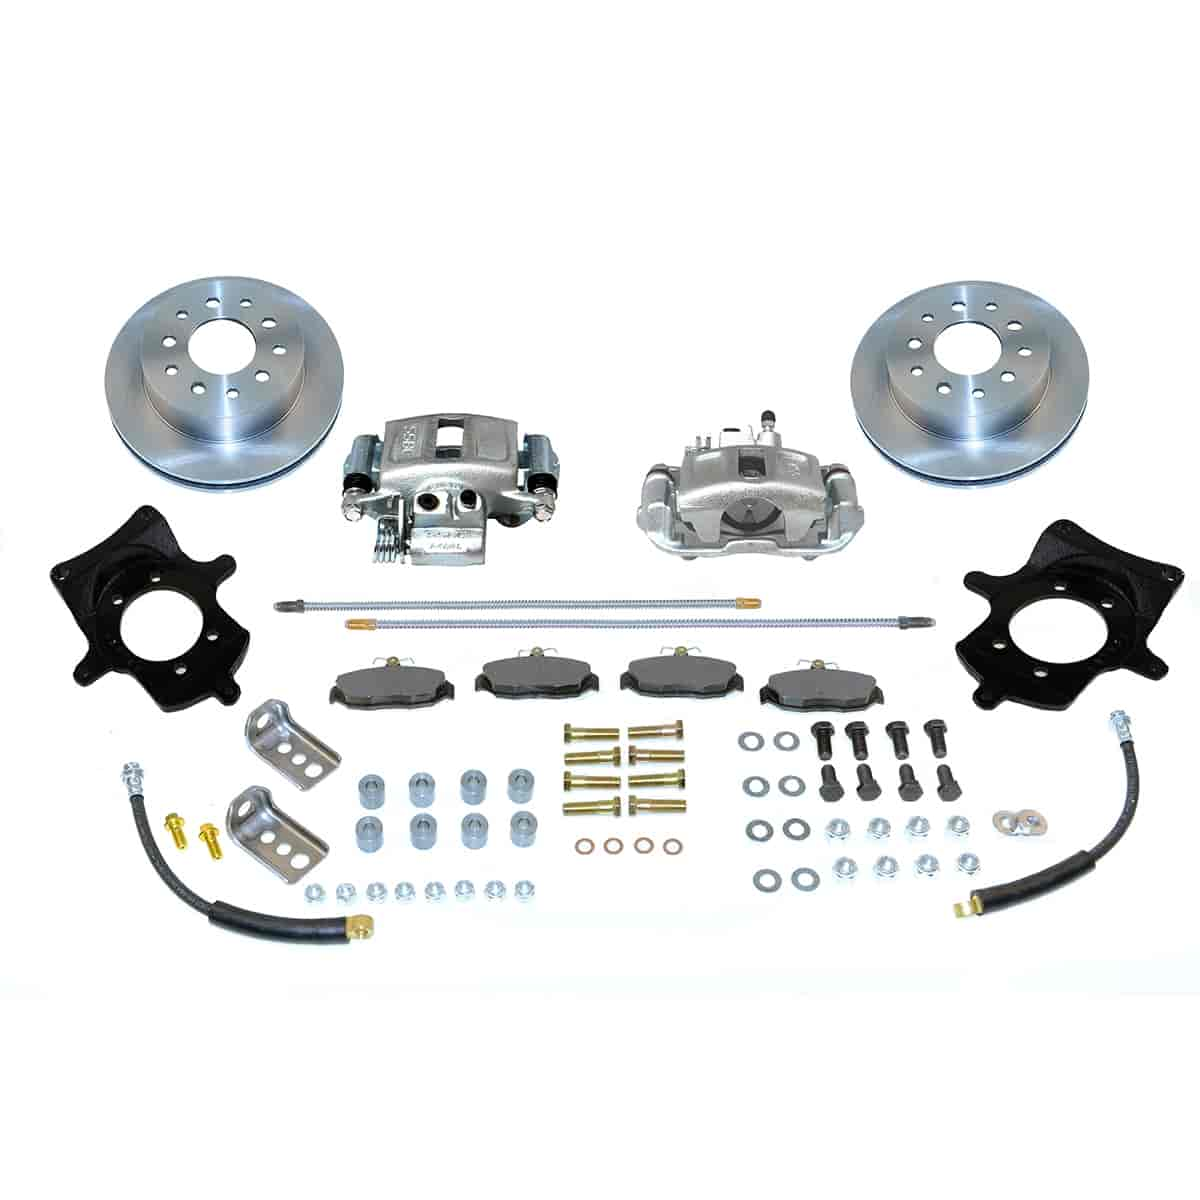 Stainless Steel Brakes A114 - Stainless Steel Brakes Single Piston Rear Drum to Disc Brake Conversion Kits